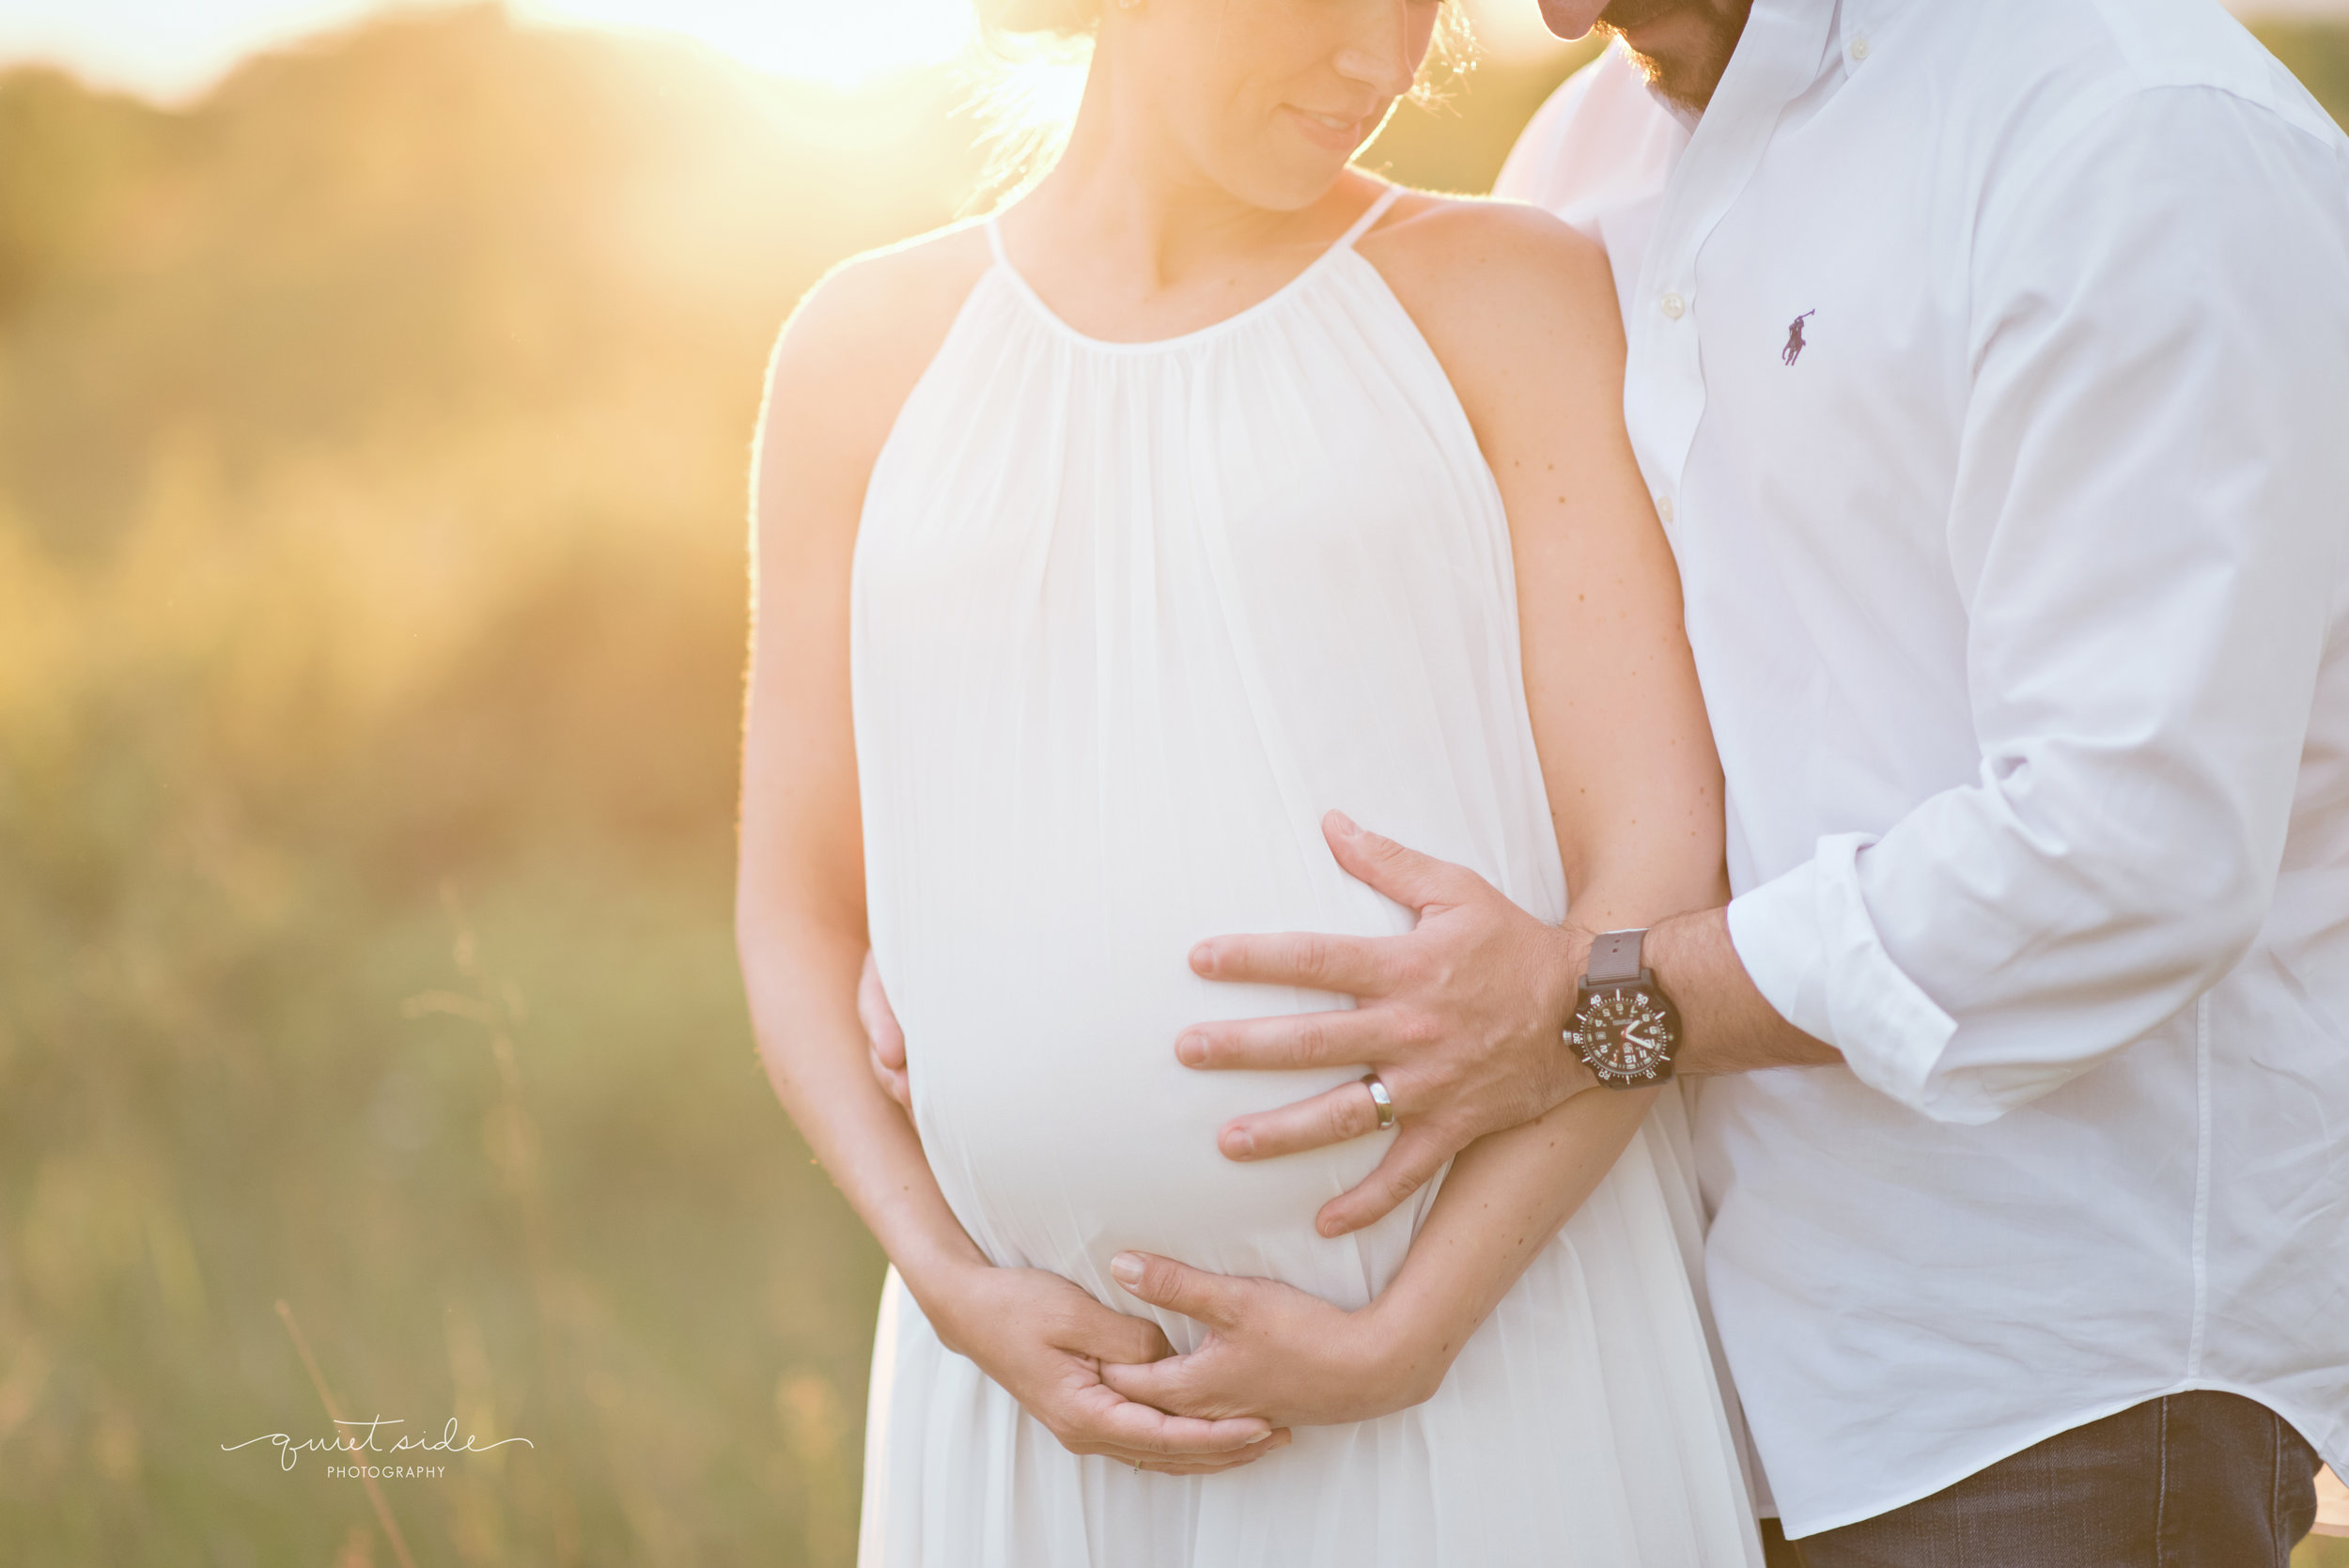 NorthernVirginia-Maternity-Sunset-Outdoor-GoldenHour-QuietSidePhotography-